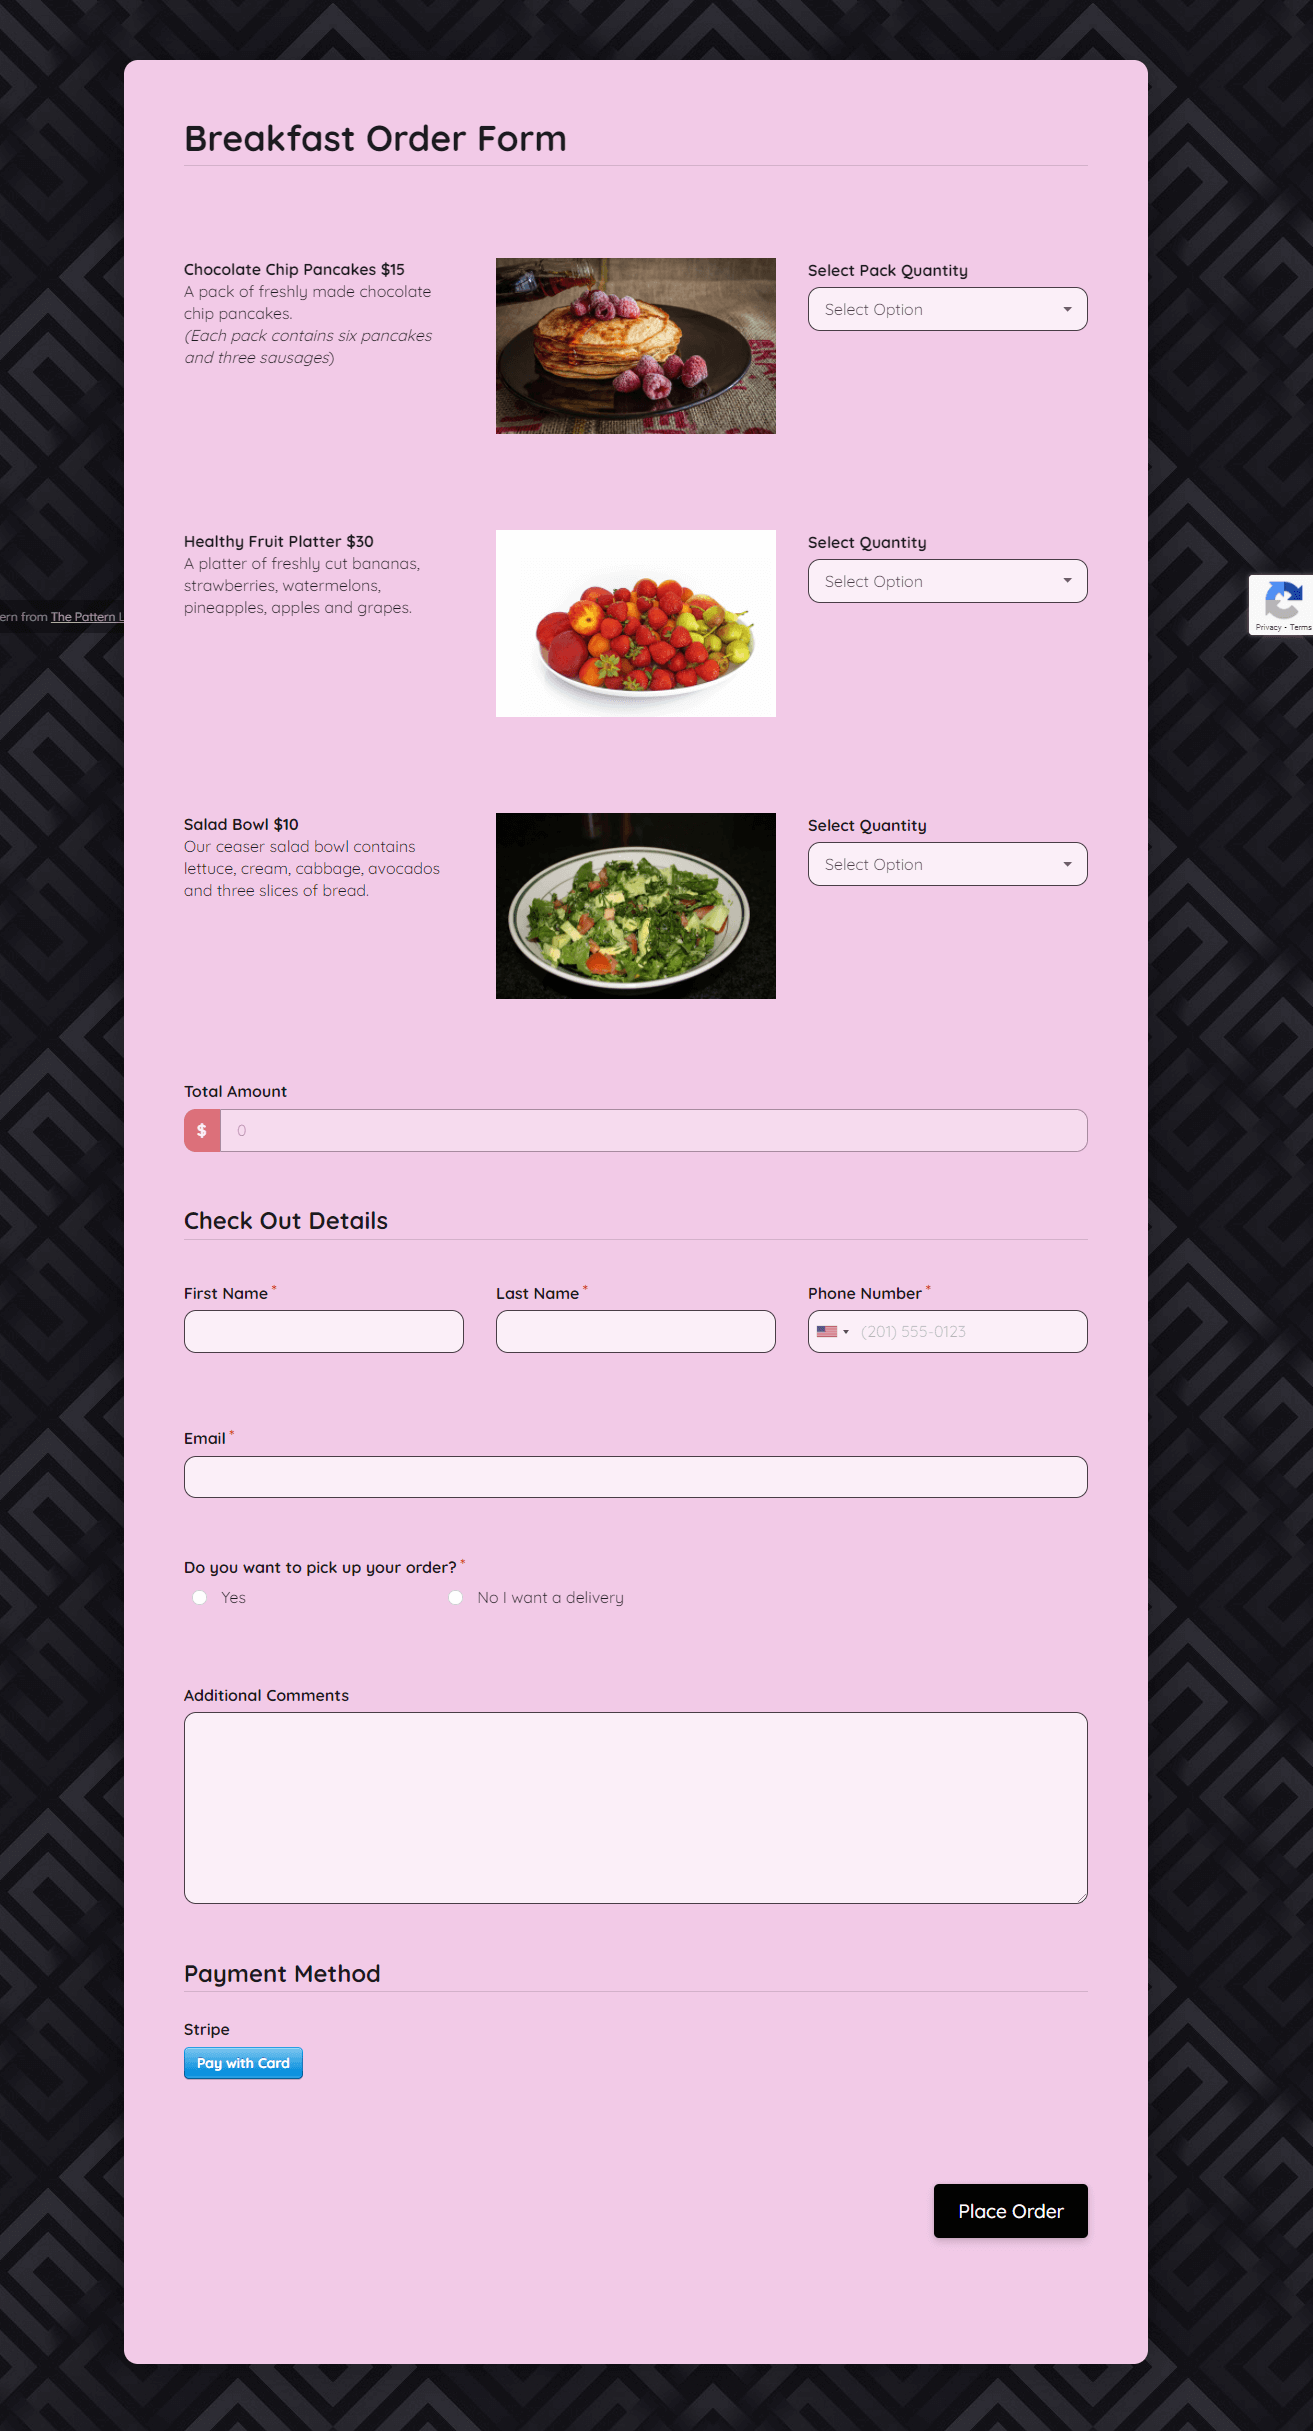 Breakfast Order Form Template template